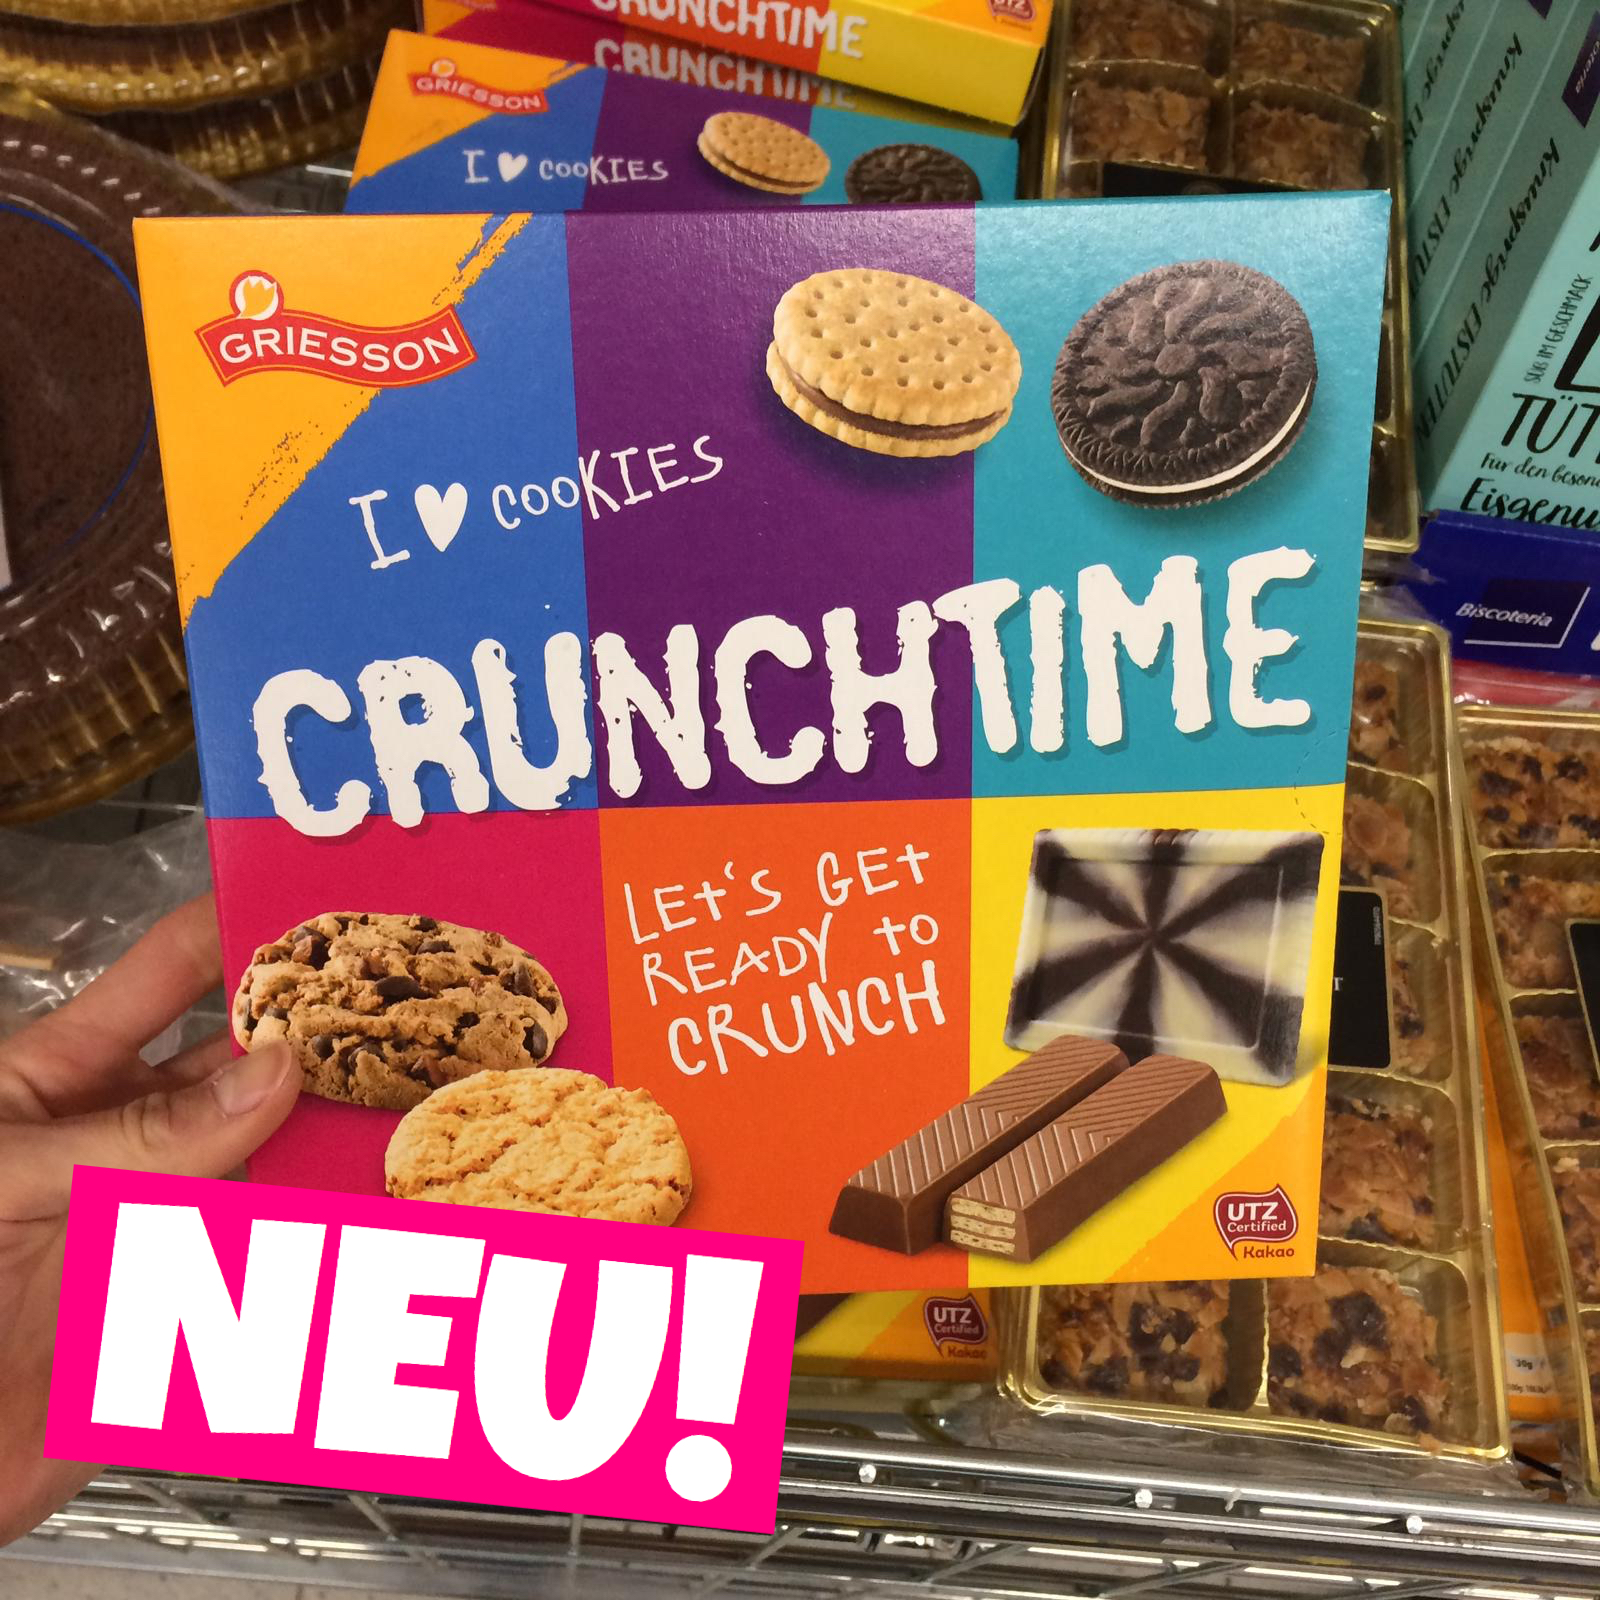 Griesson Crunchtime